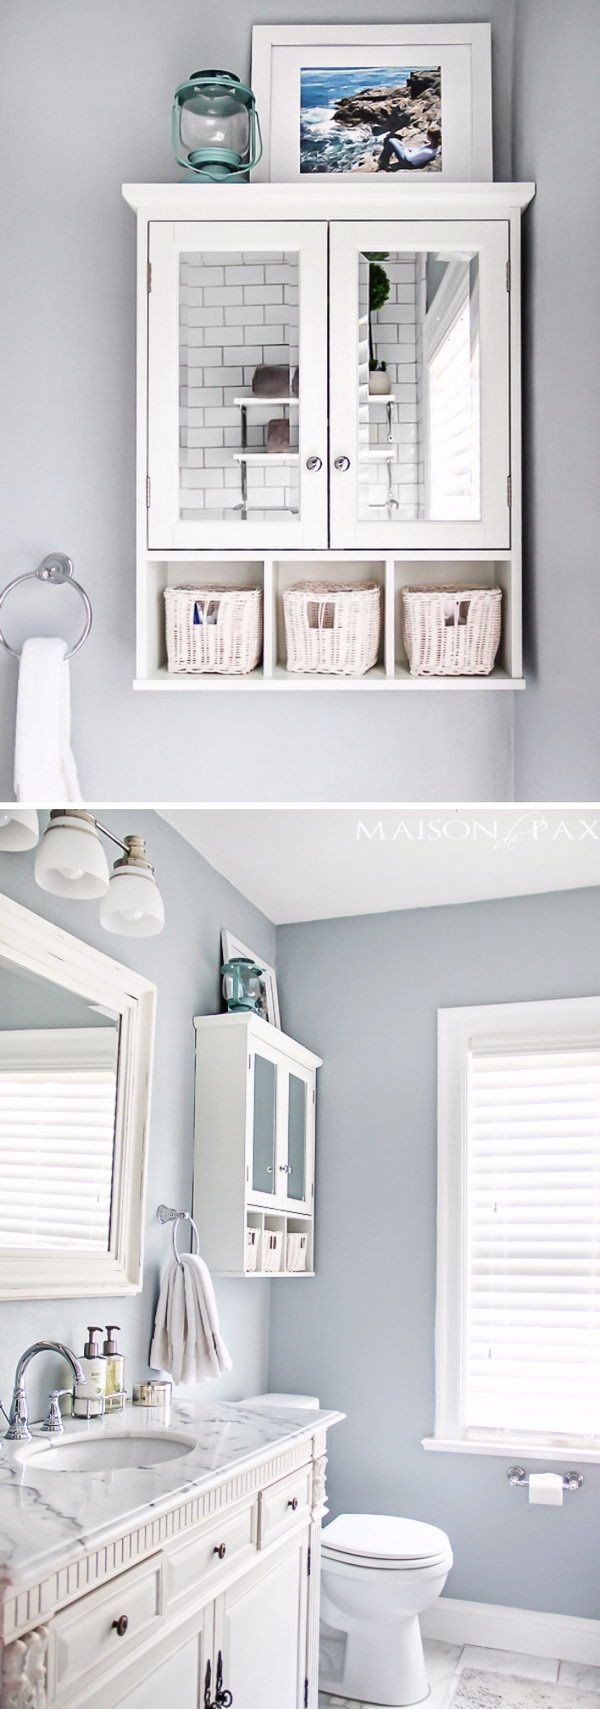 43 Over The Toilet Storage Ideas For Extra Space | Bathroom Ideas ...